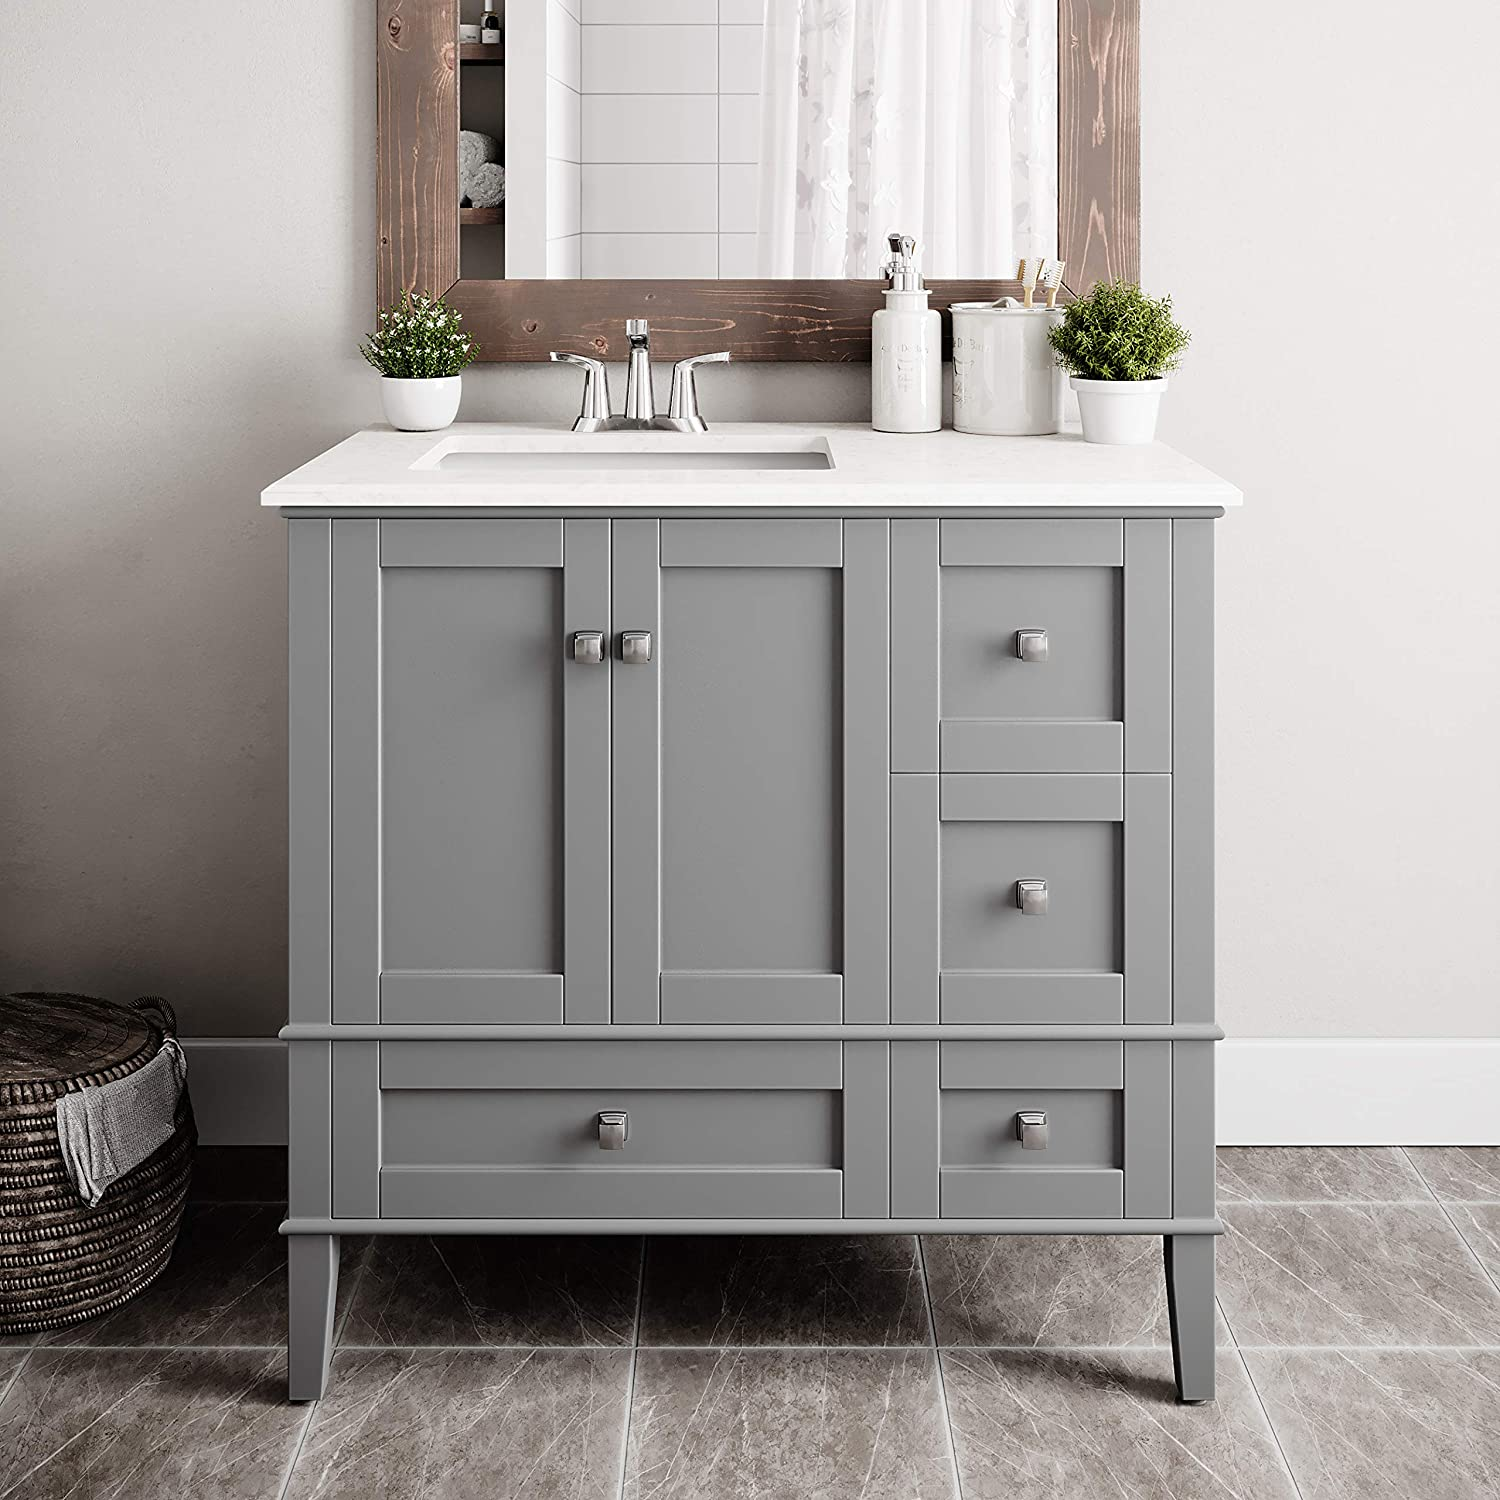 SIMPLIHOME Chelsea 36 inch Contemporary Bath Vanity in Smoke Grey with White Engineered Quartz Marble Top